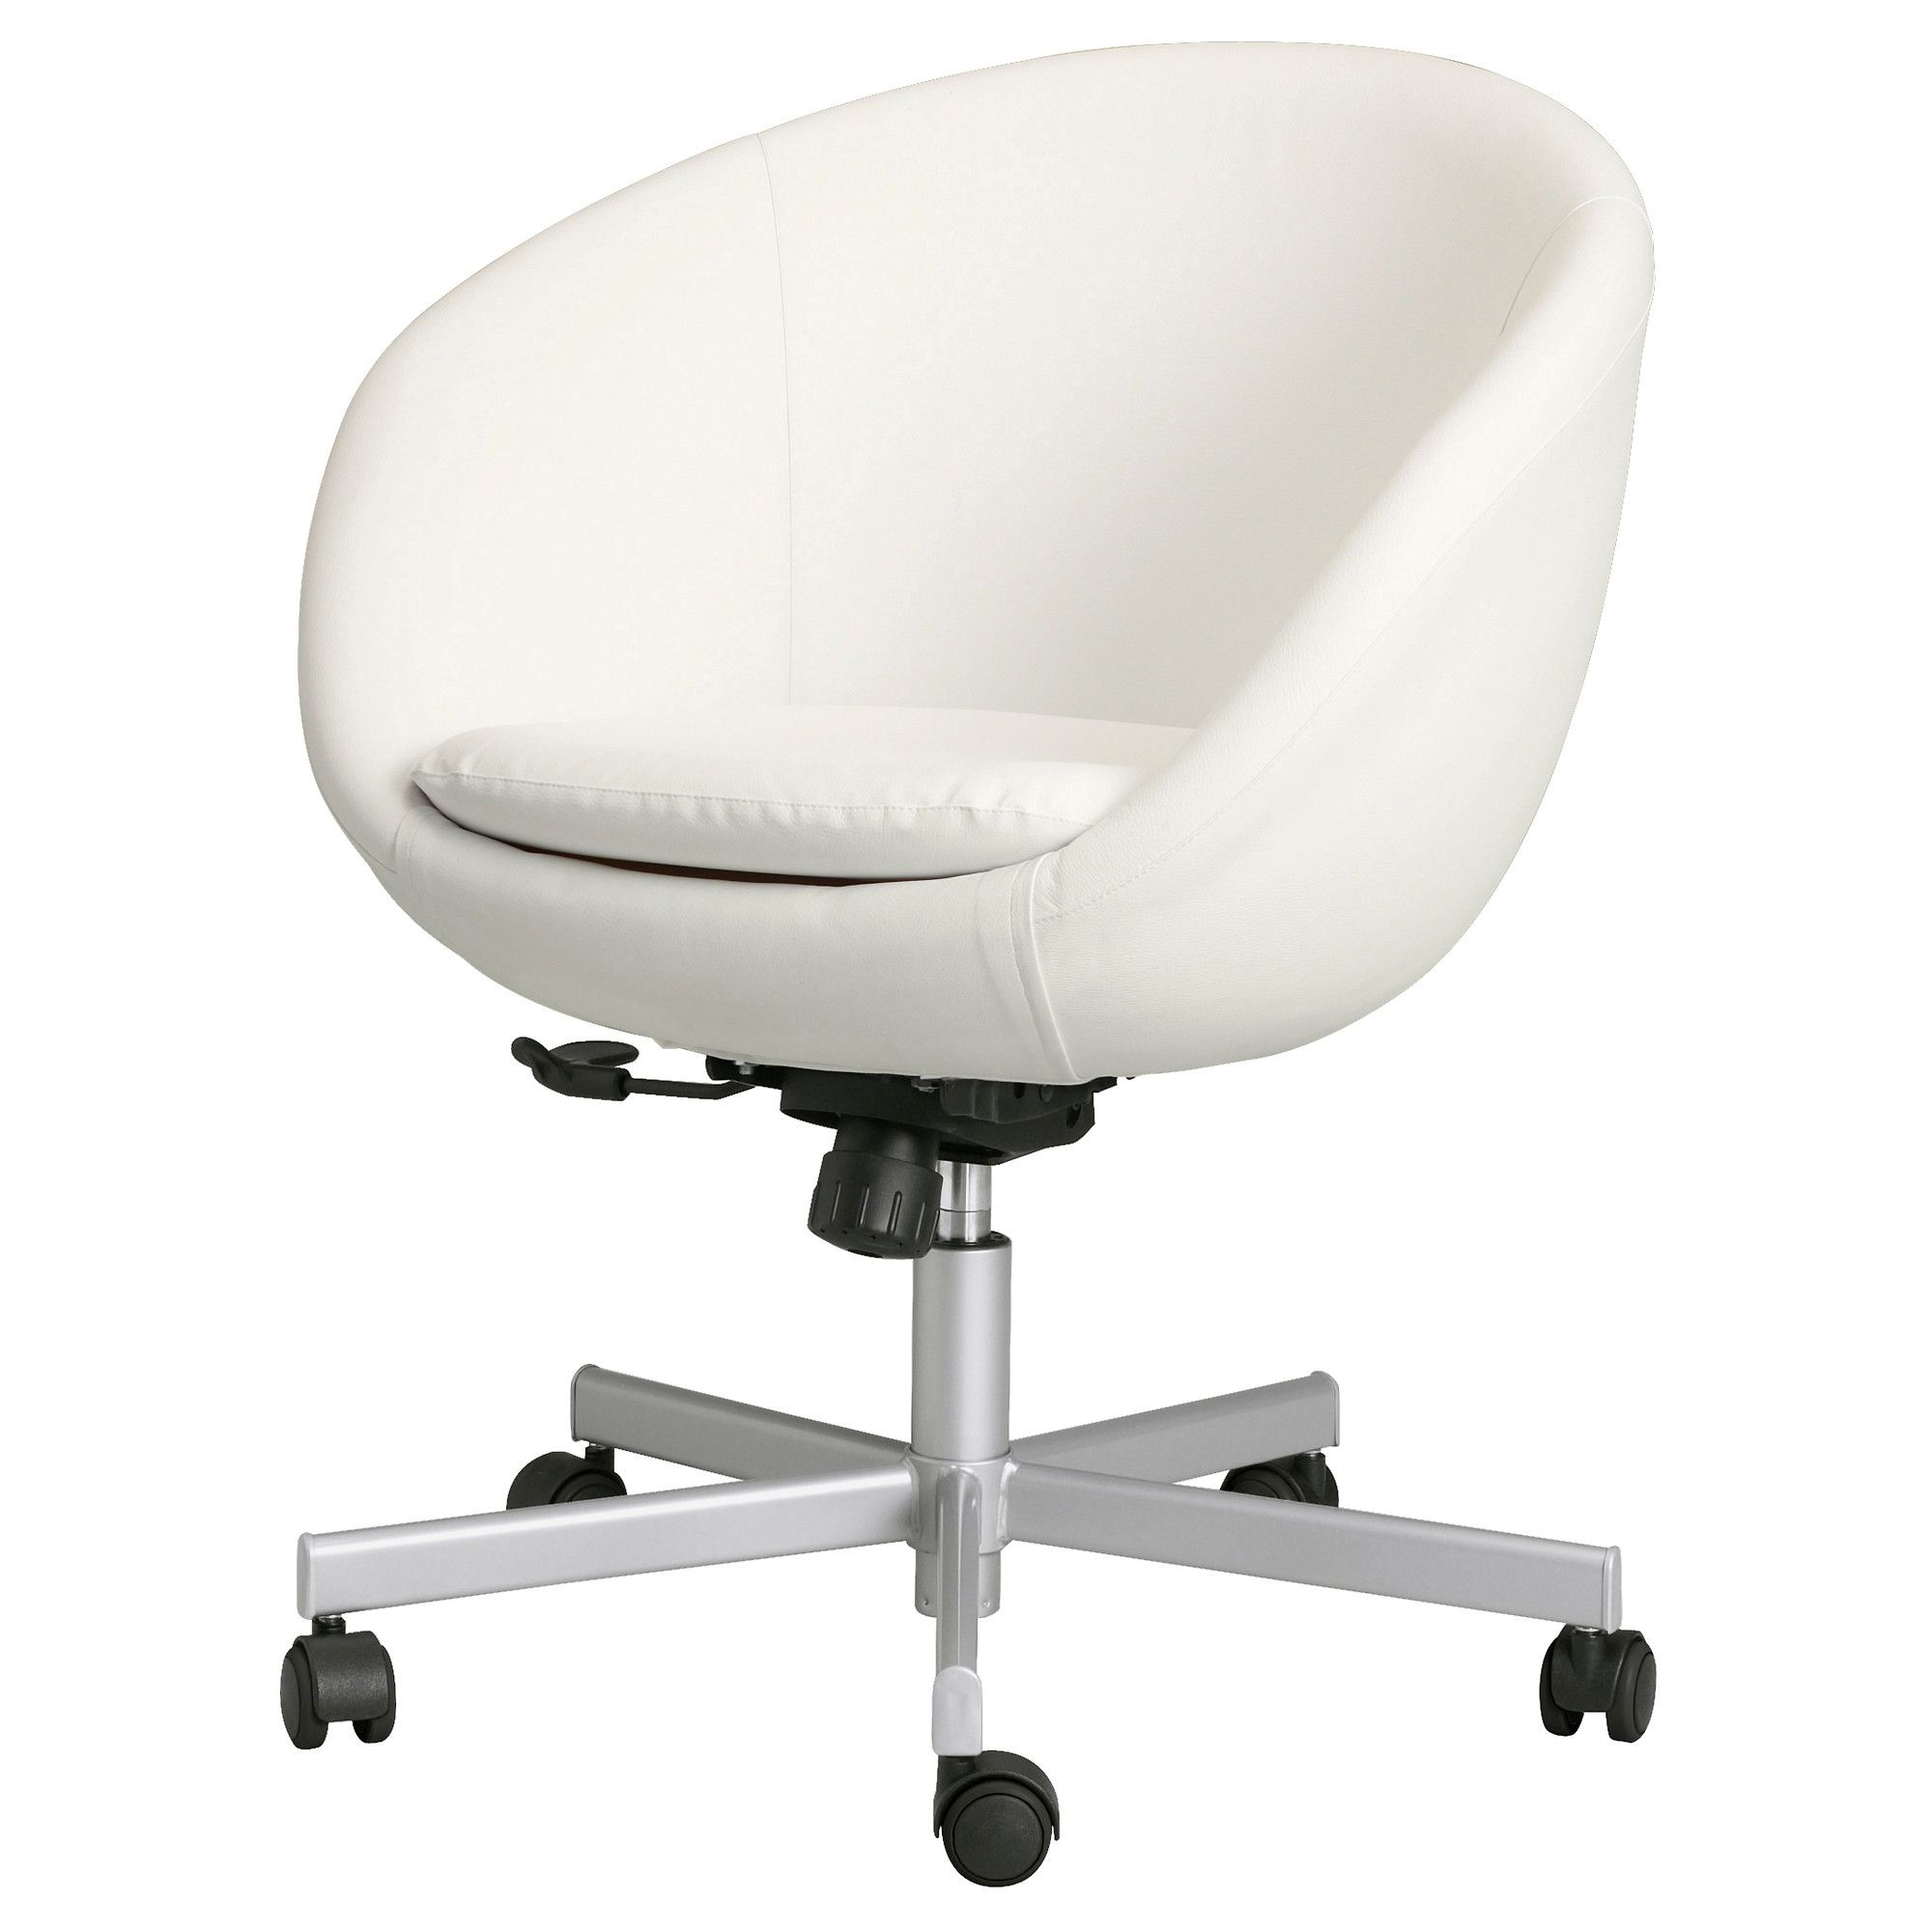 SKRUVSTA Swivel chair Idhult white IKEA Key features